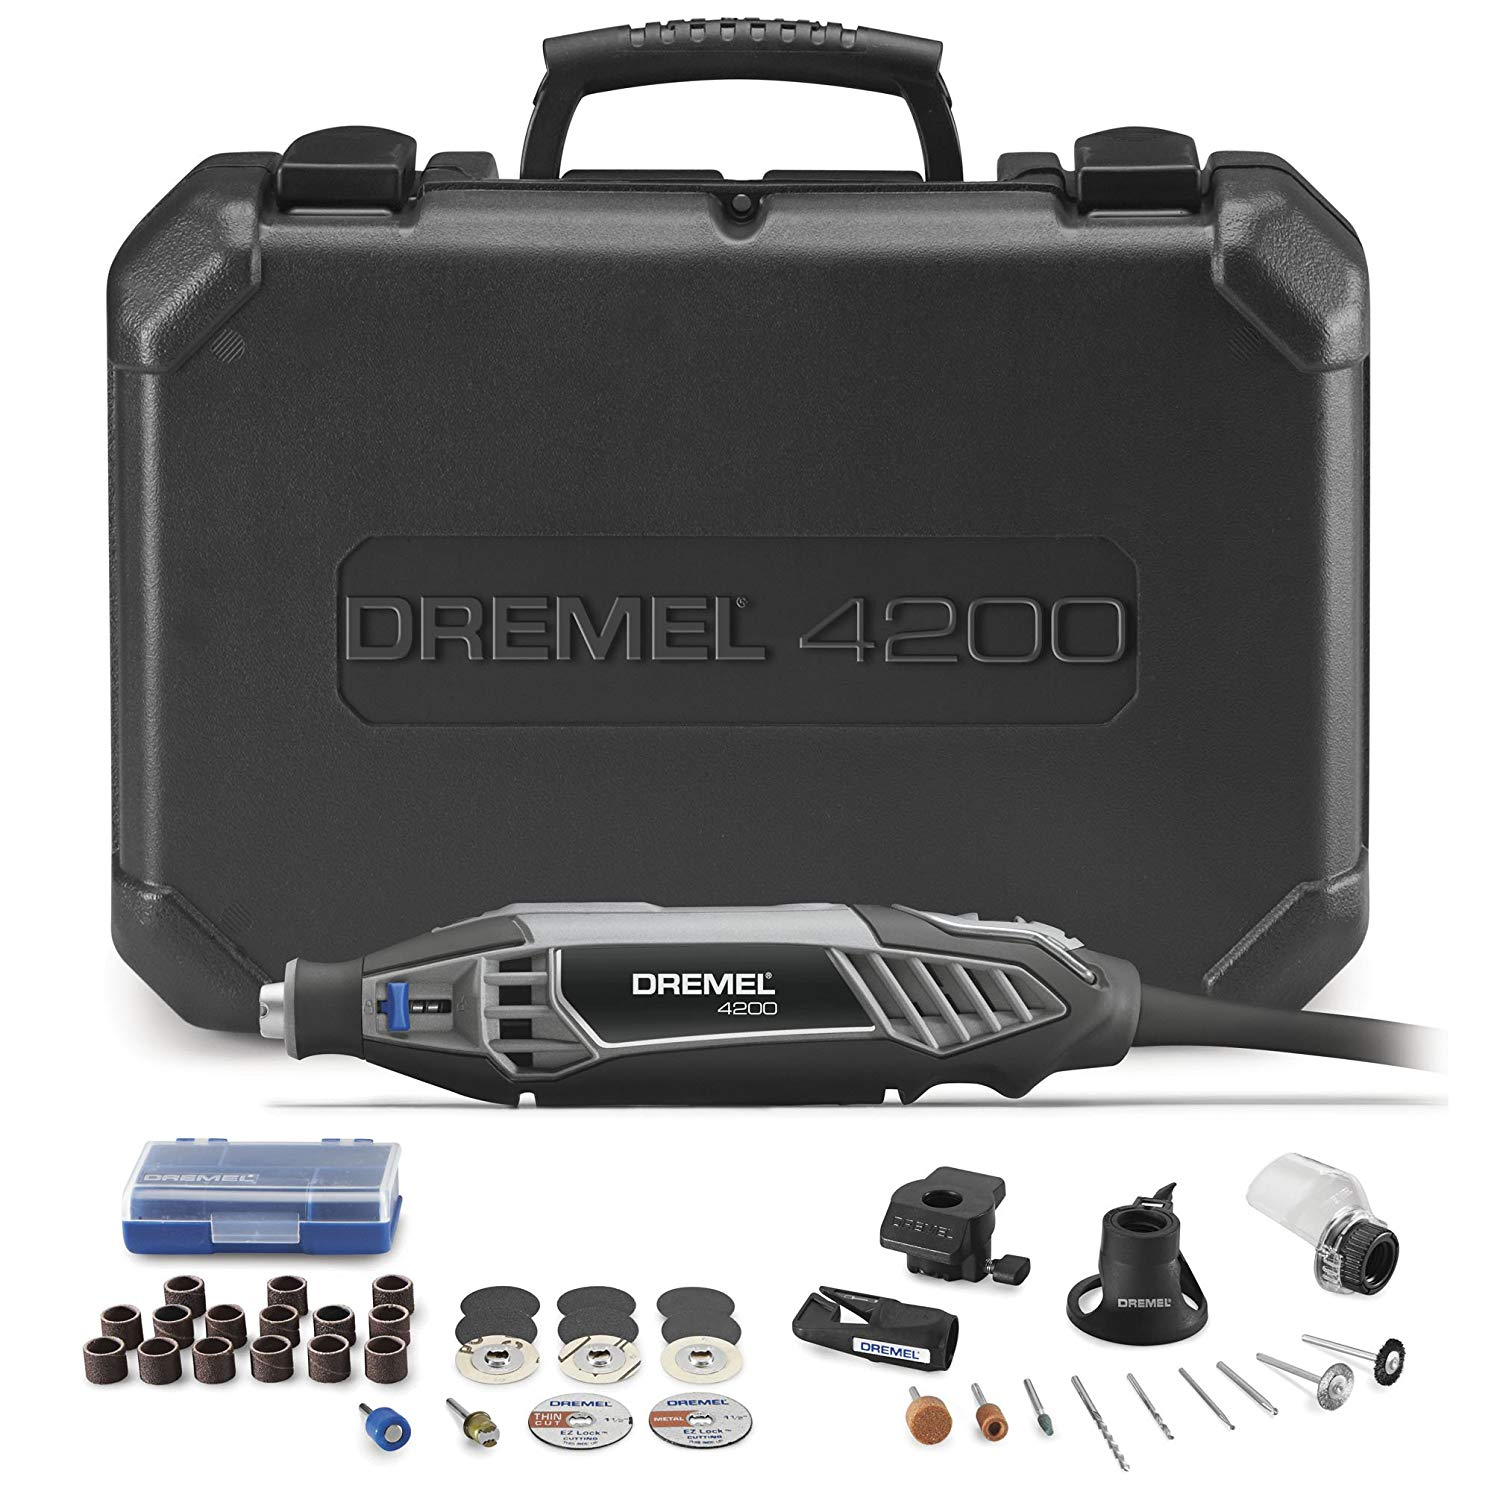 Dremel 4200 reviews